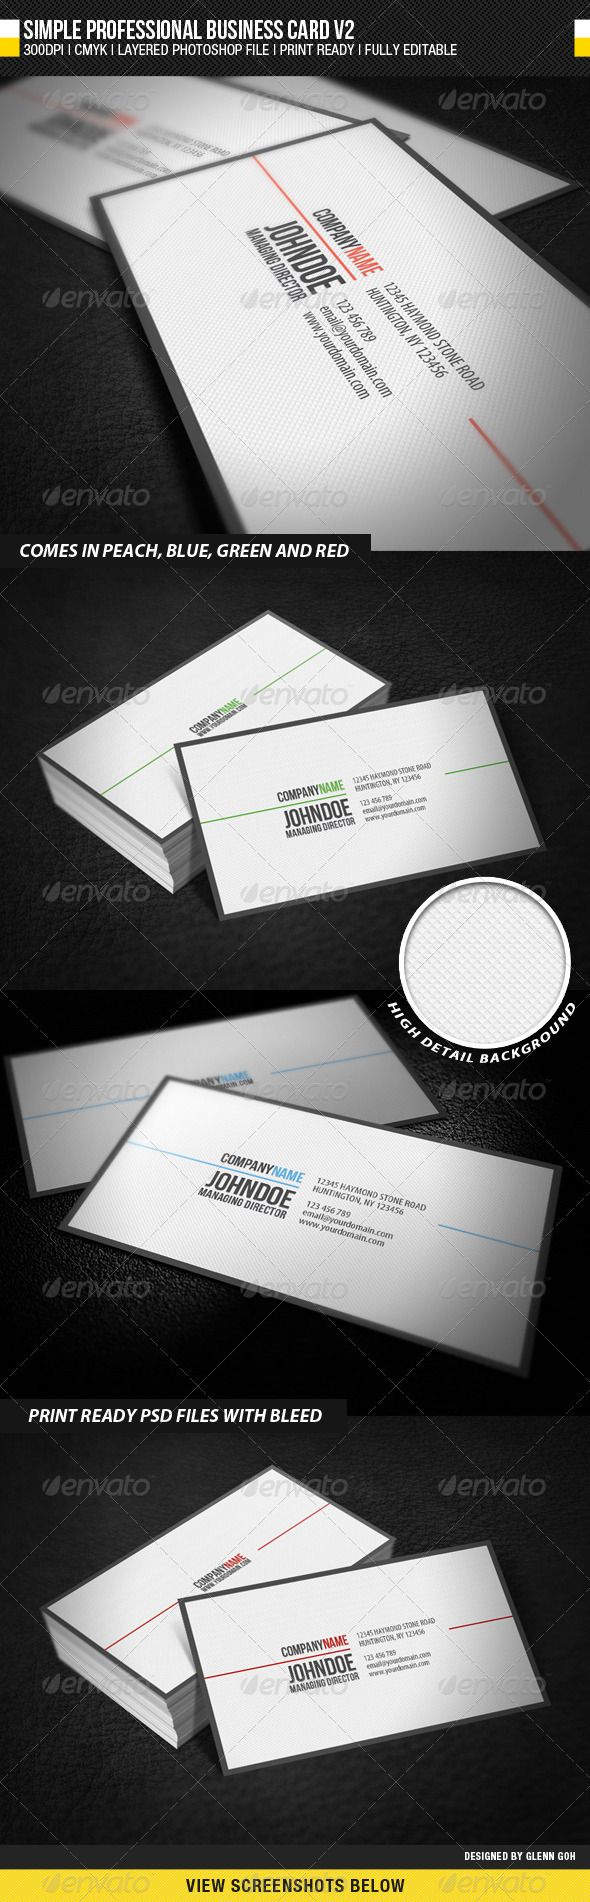 605 best business card template images on pinterest business card simple professional business card v2 reheart Gallery